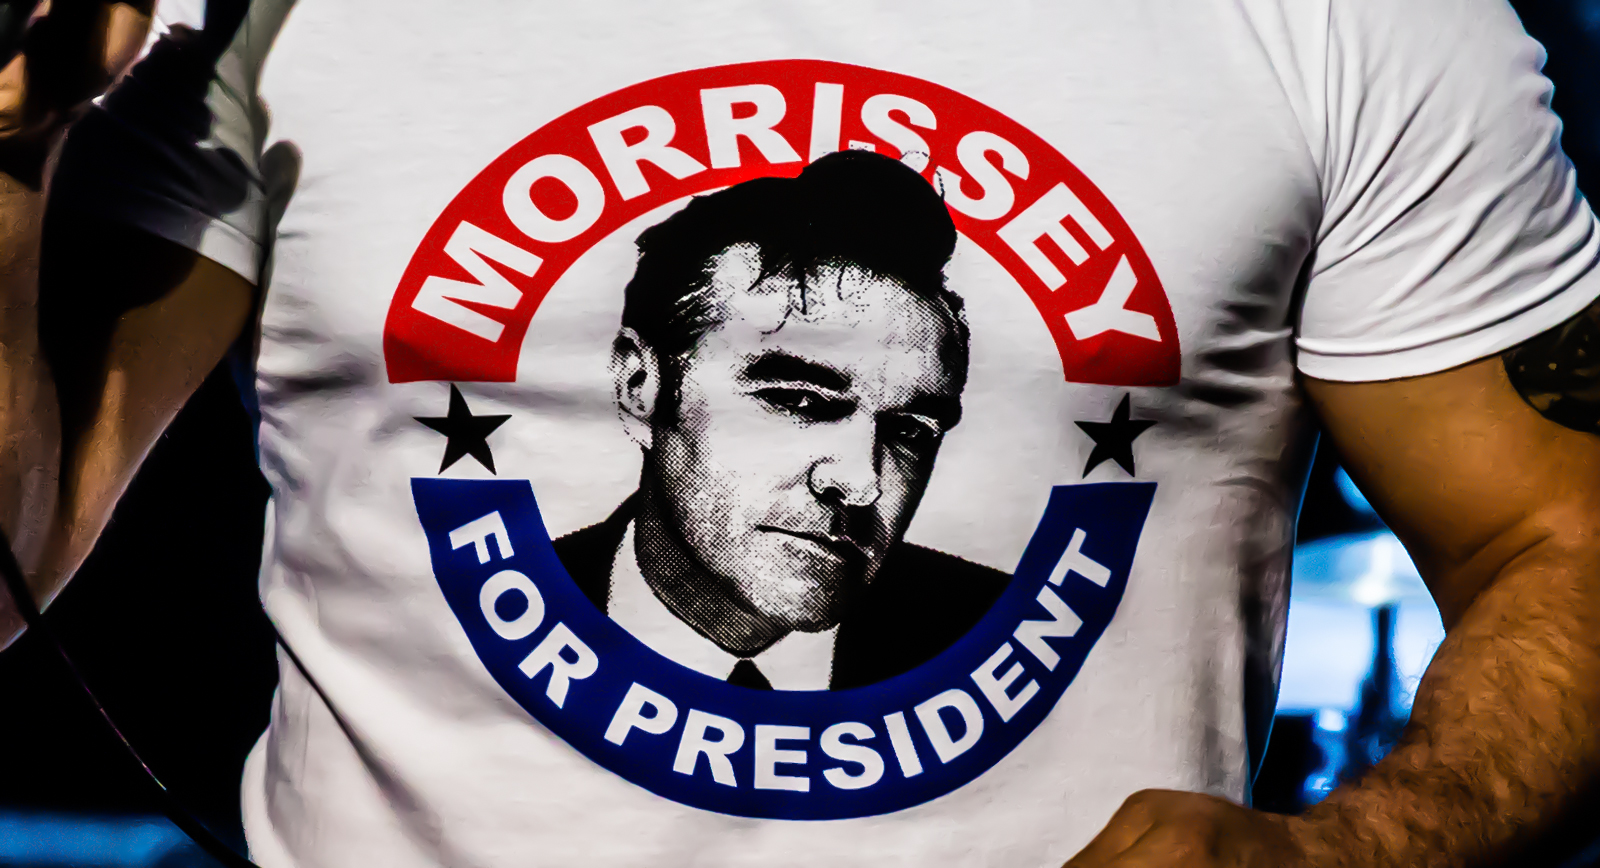 Morrissey-Concert-Review-Photos-2015-Tour-Masonic-San-Francisco-FI